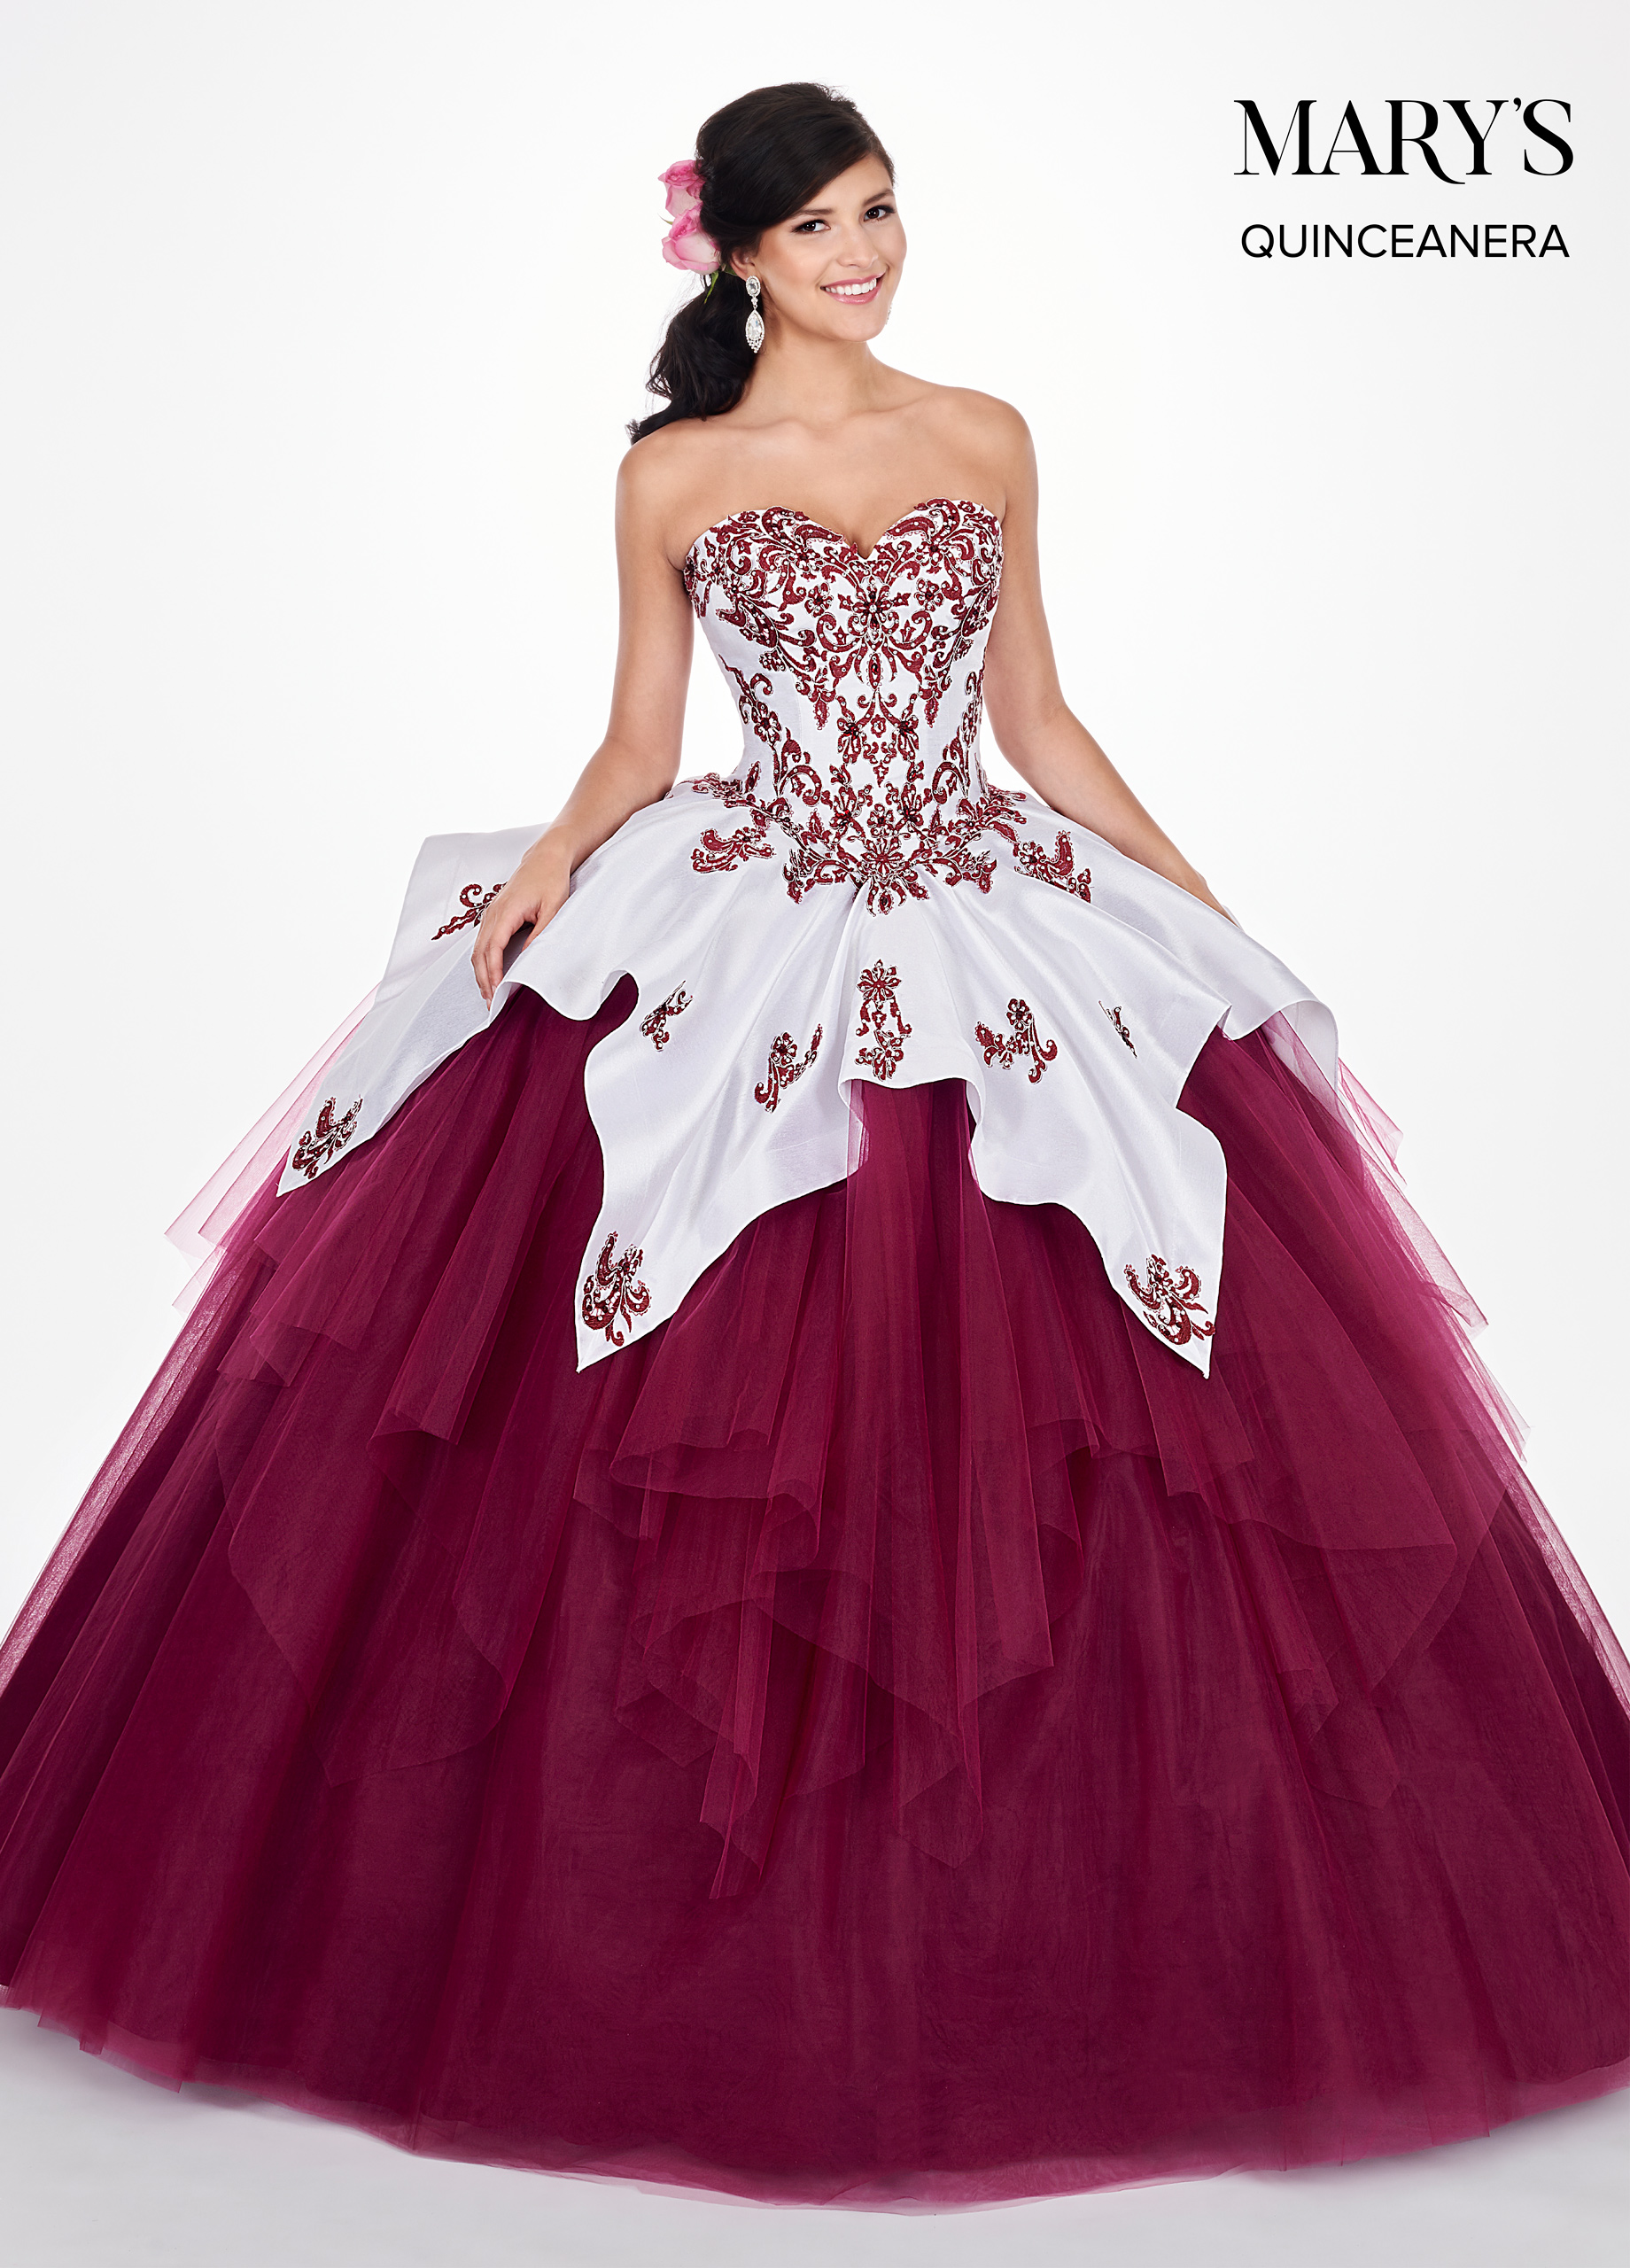 Marys Quinceanera Dresses | Mary's Quinceanera | Style - MQ2056